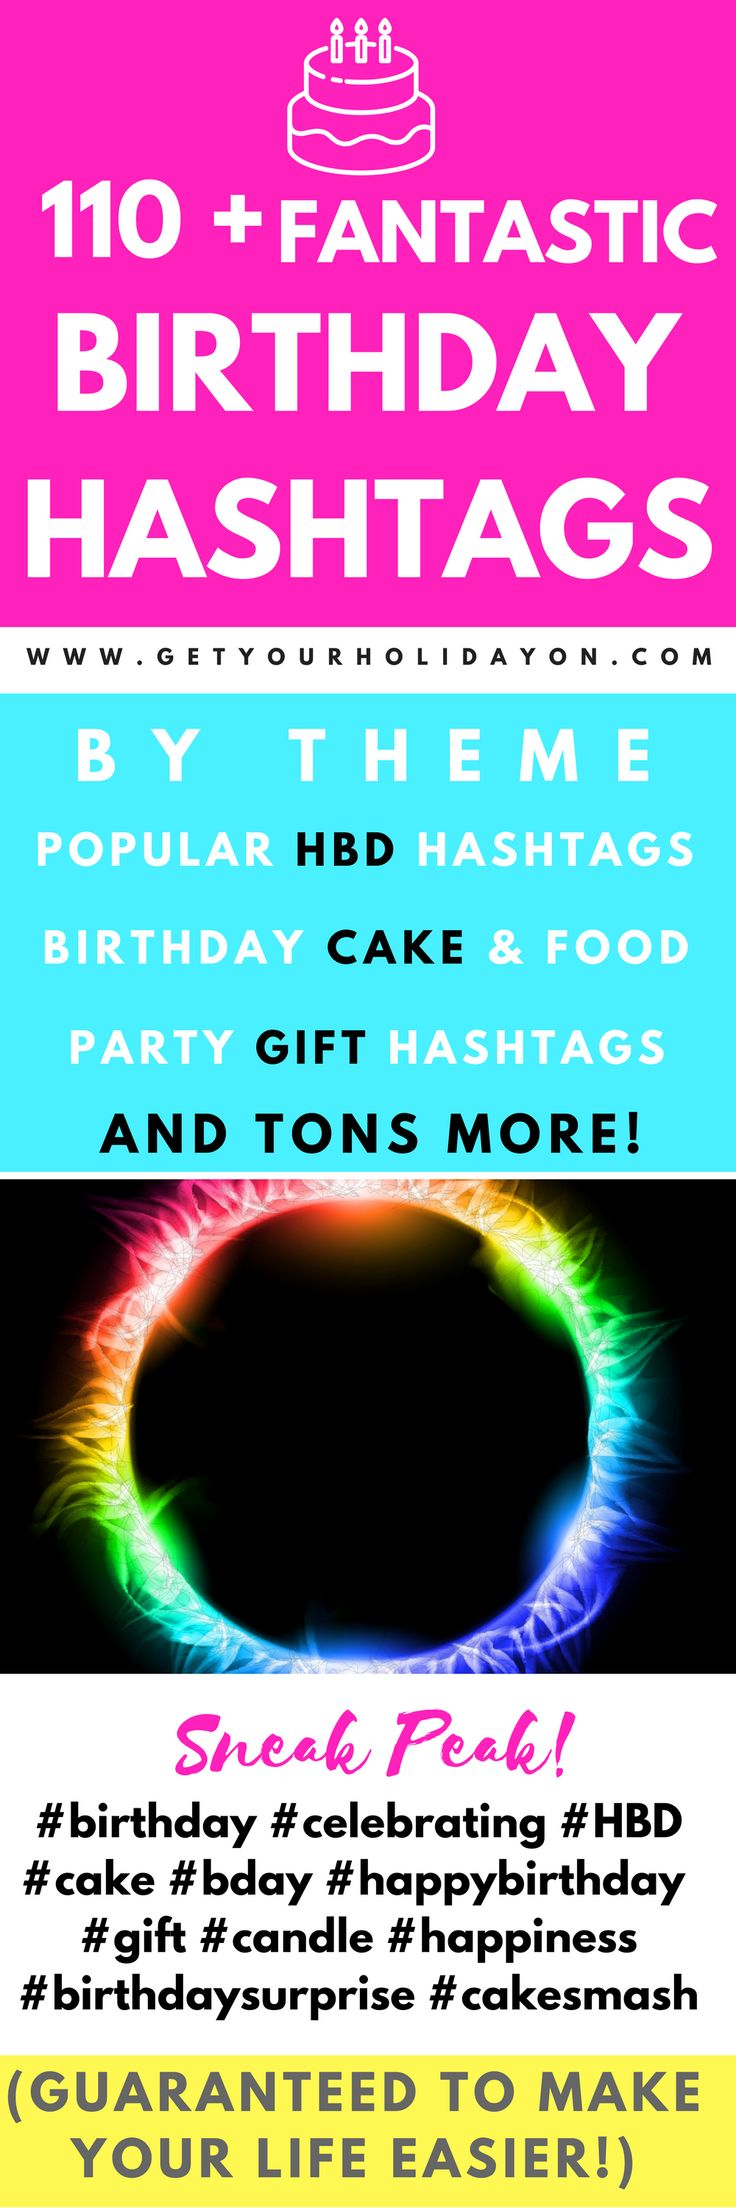 The ultimate guide to birthday hashtags! This is really easy to follow guide from Get Your Holiday On helped me to gain more followers on my birthday. There are a ton of birthday themed hashtags that are perfect for hashtagging your birthday cake, birthday breakfast, birthday party, and a whole lot more! #bloggers #happybirthday #diy #food